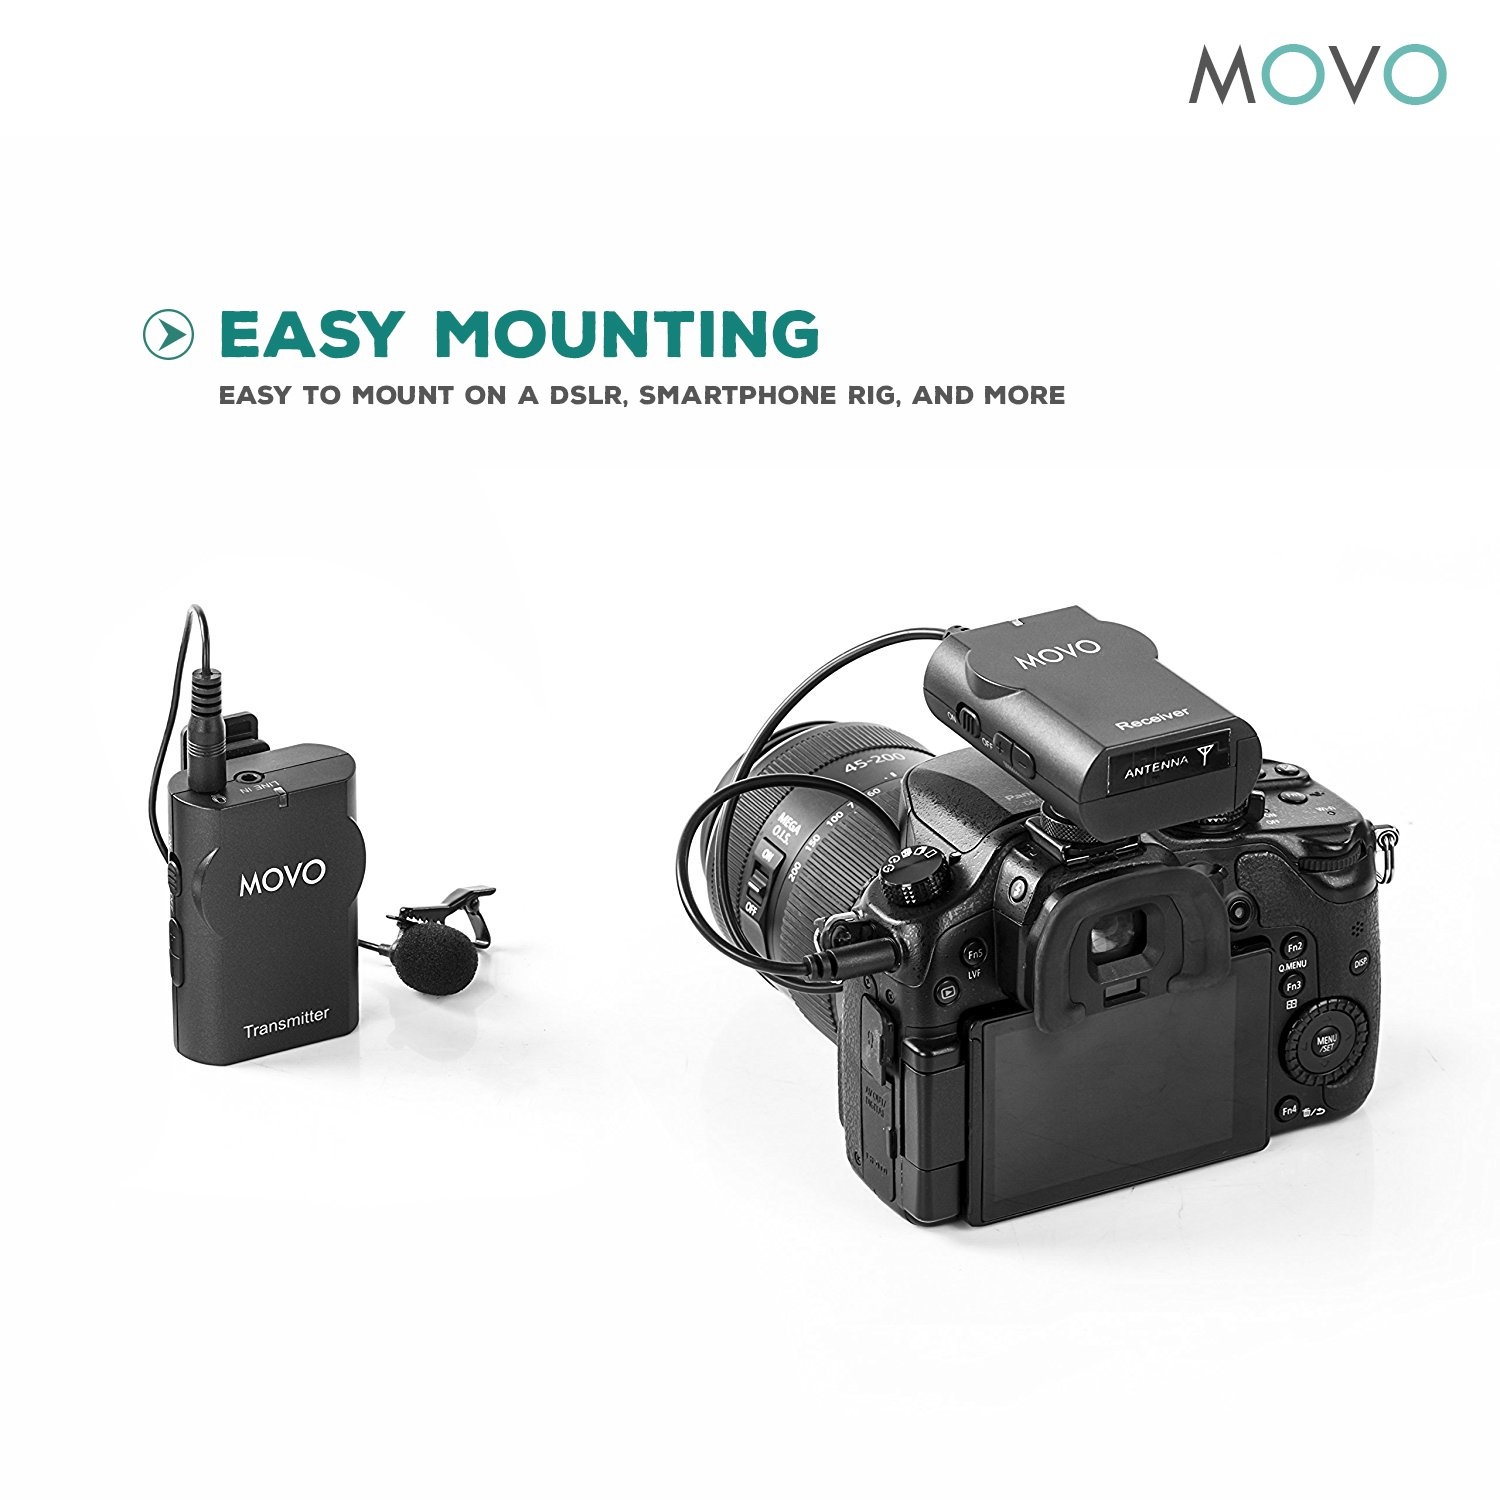 Movo WMIC10 2.4GHz Wireless Lavalier Microphone System for DSLR Cameras, iPhone/iPad/Android Smartphones, Camcorders (50-foot Transmission Range) by Movo (Image #4)